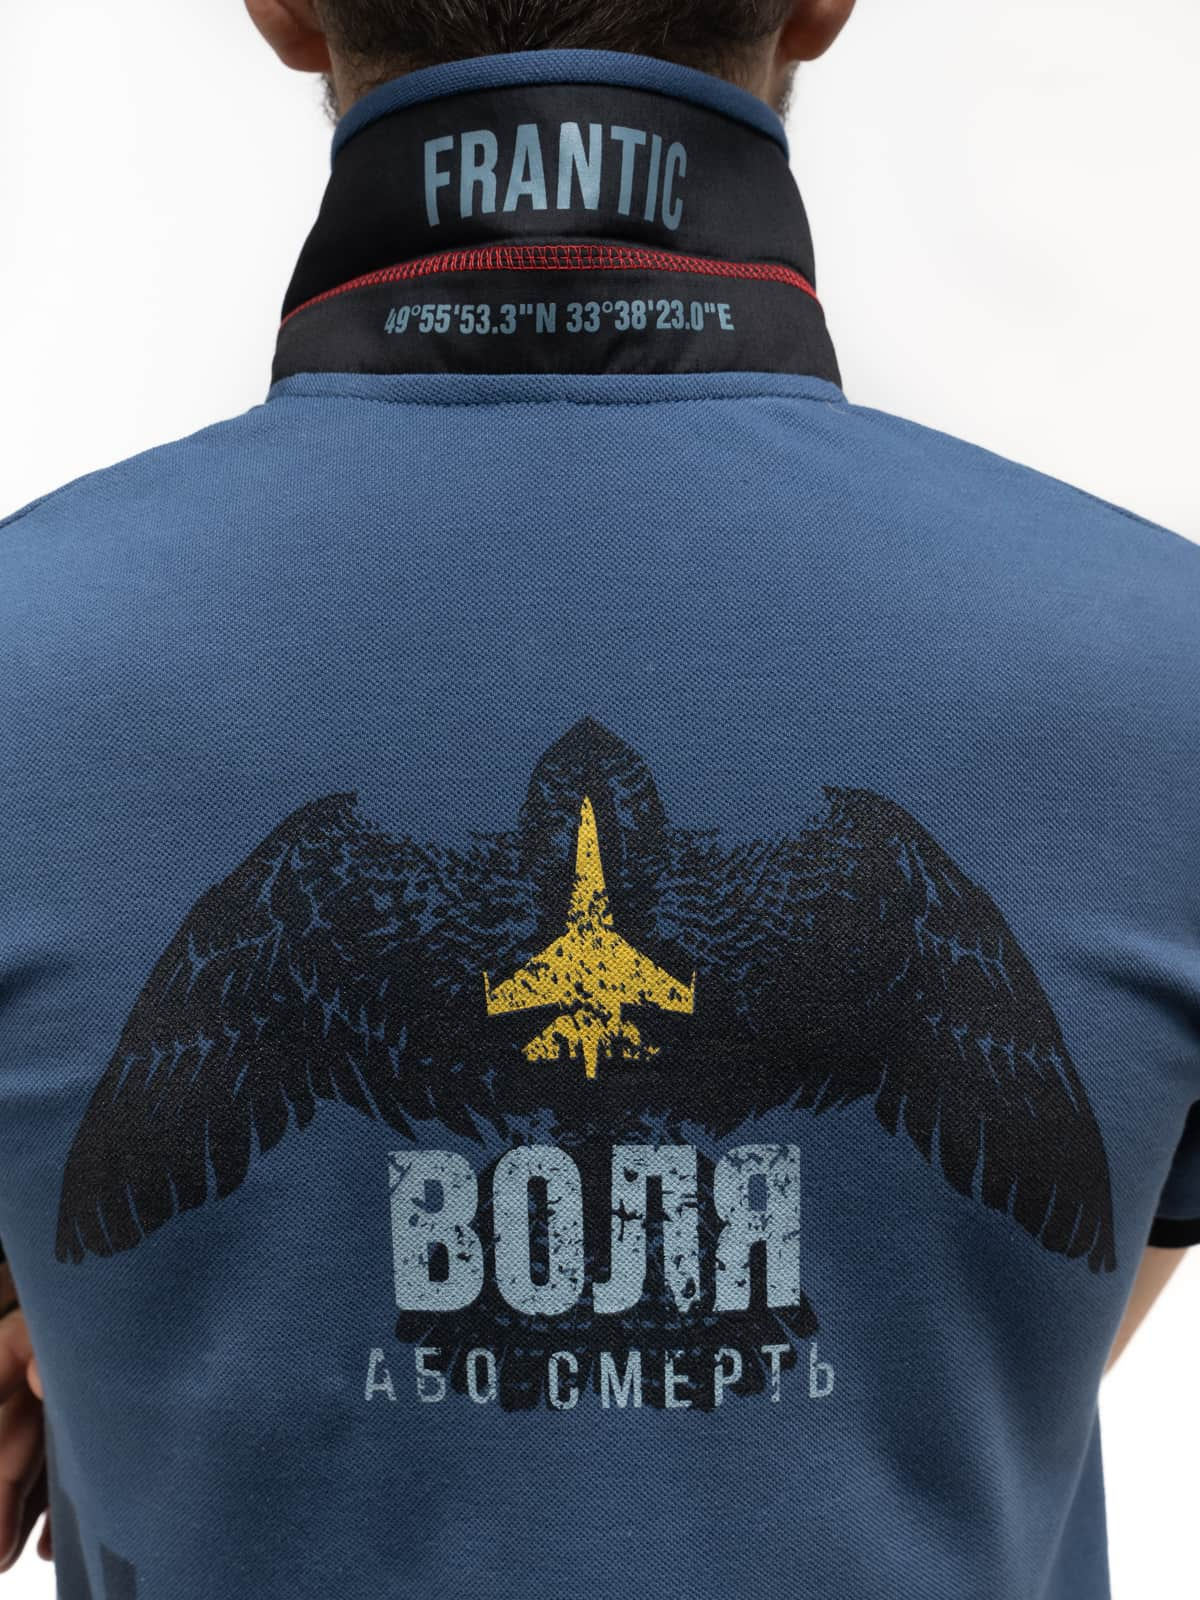 Men's Polo Shirt 831 Brigade. Color denim.  Size worn by the model: М.